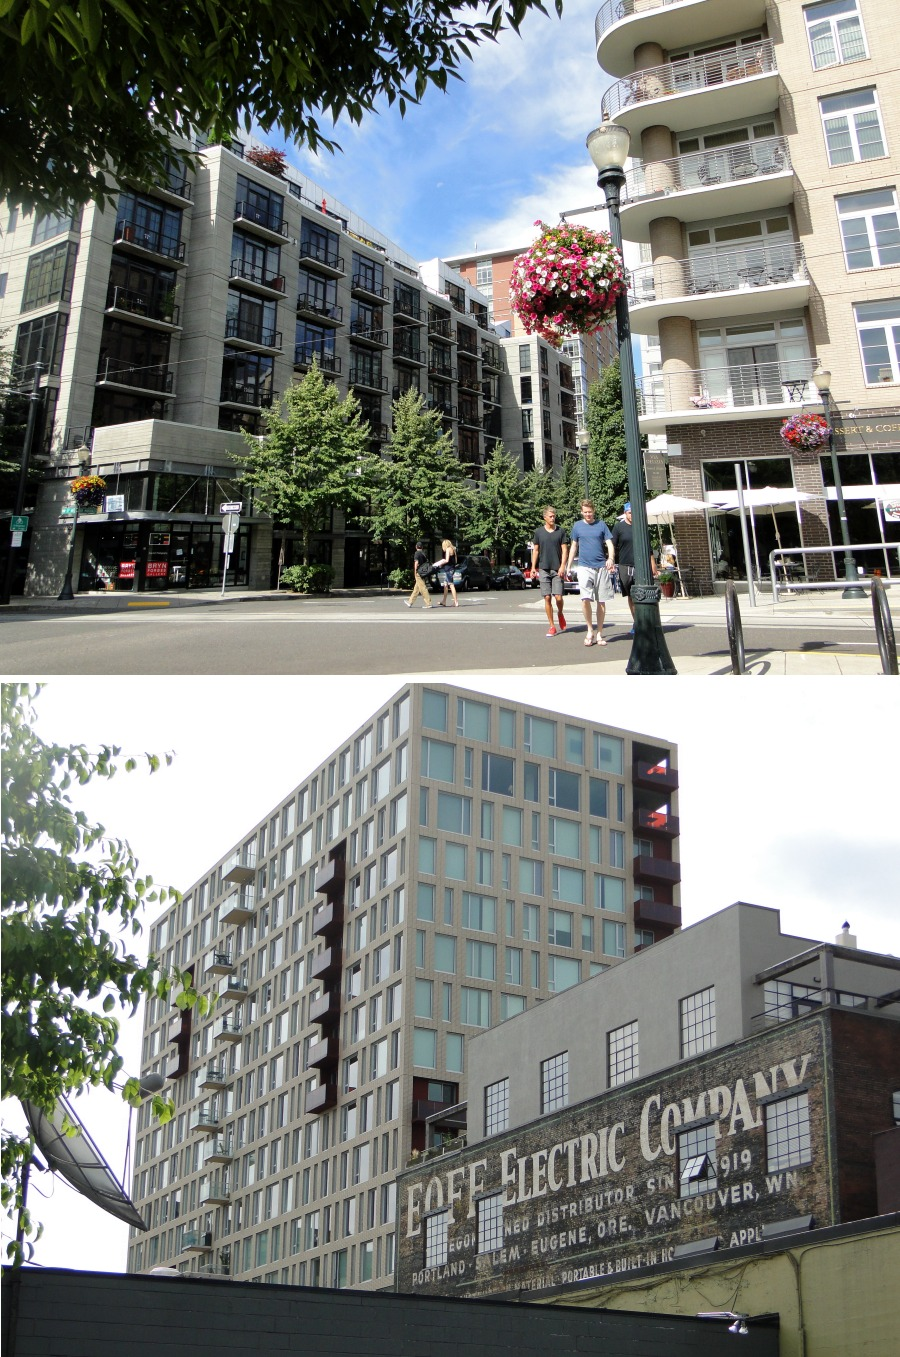 Two of the many new buildings in Portland's Pearl District just north of downtown.